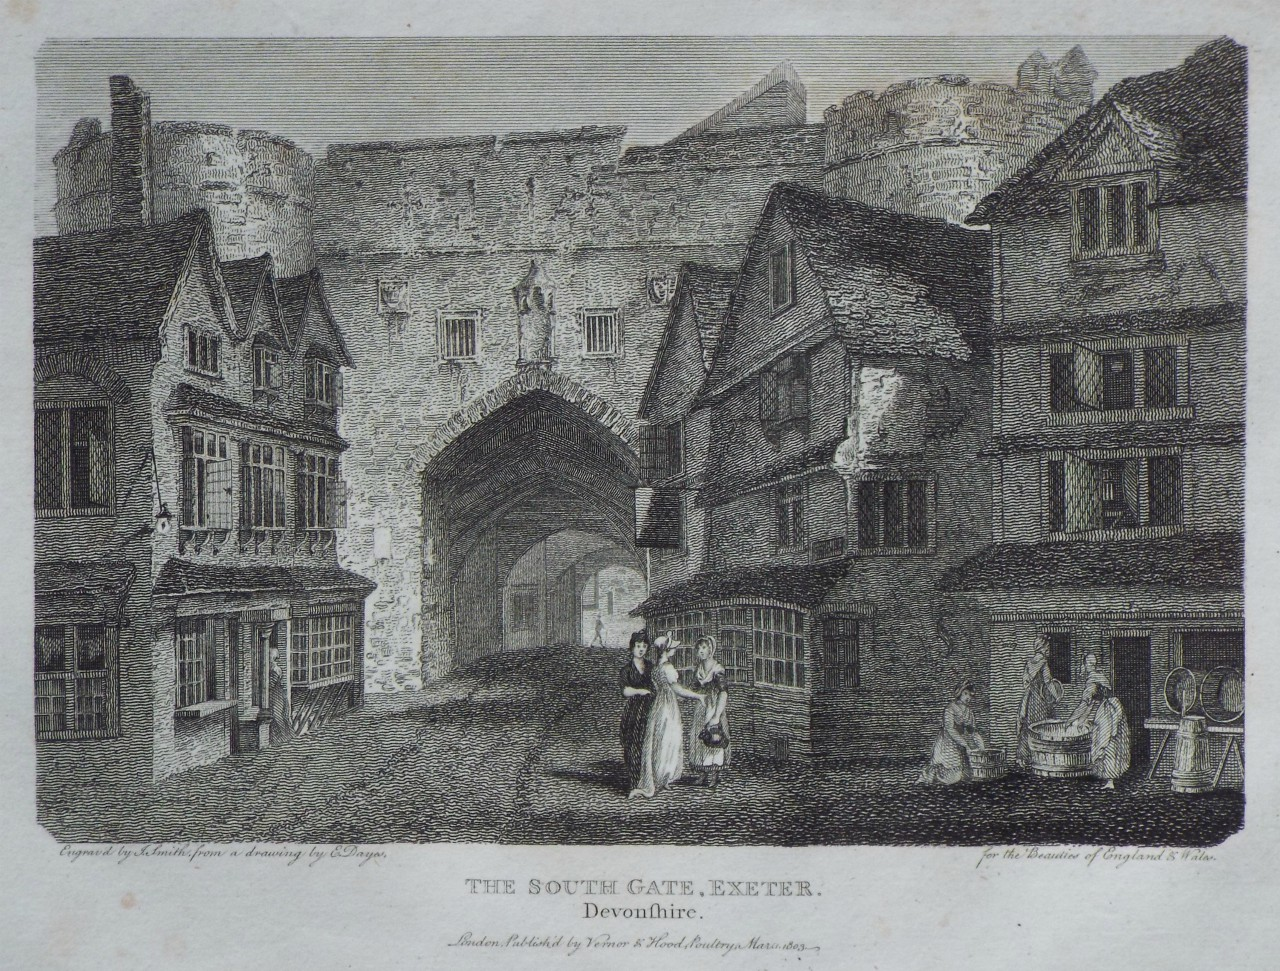 Print - The South Gate, Exeter, Devonshire. - Smith